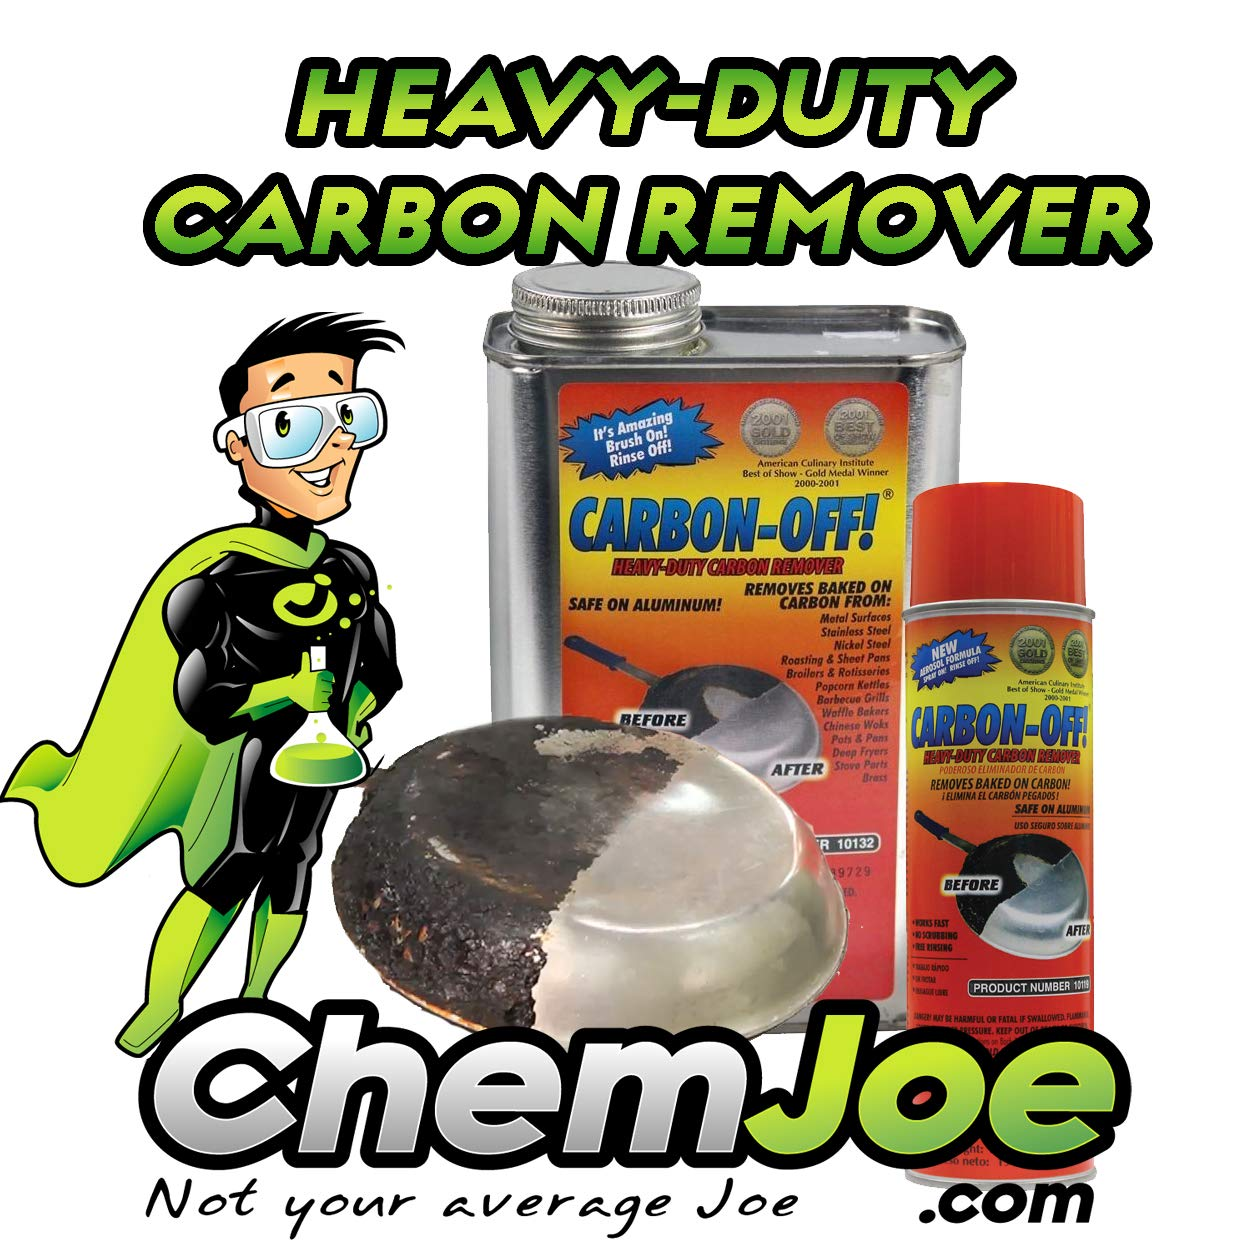 CARBON-OFF! Heavy Duty Carbon Remover -Aerosol 6 pack by CARBON-OFF! (Image #3)